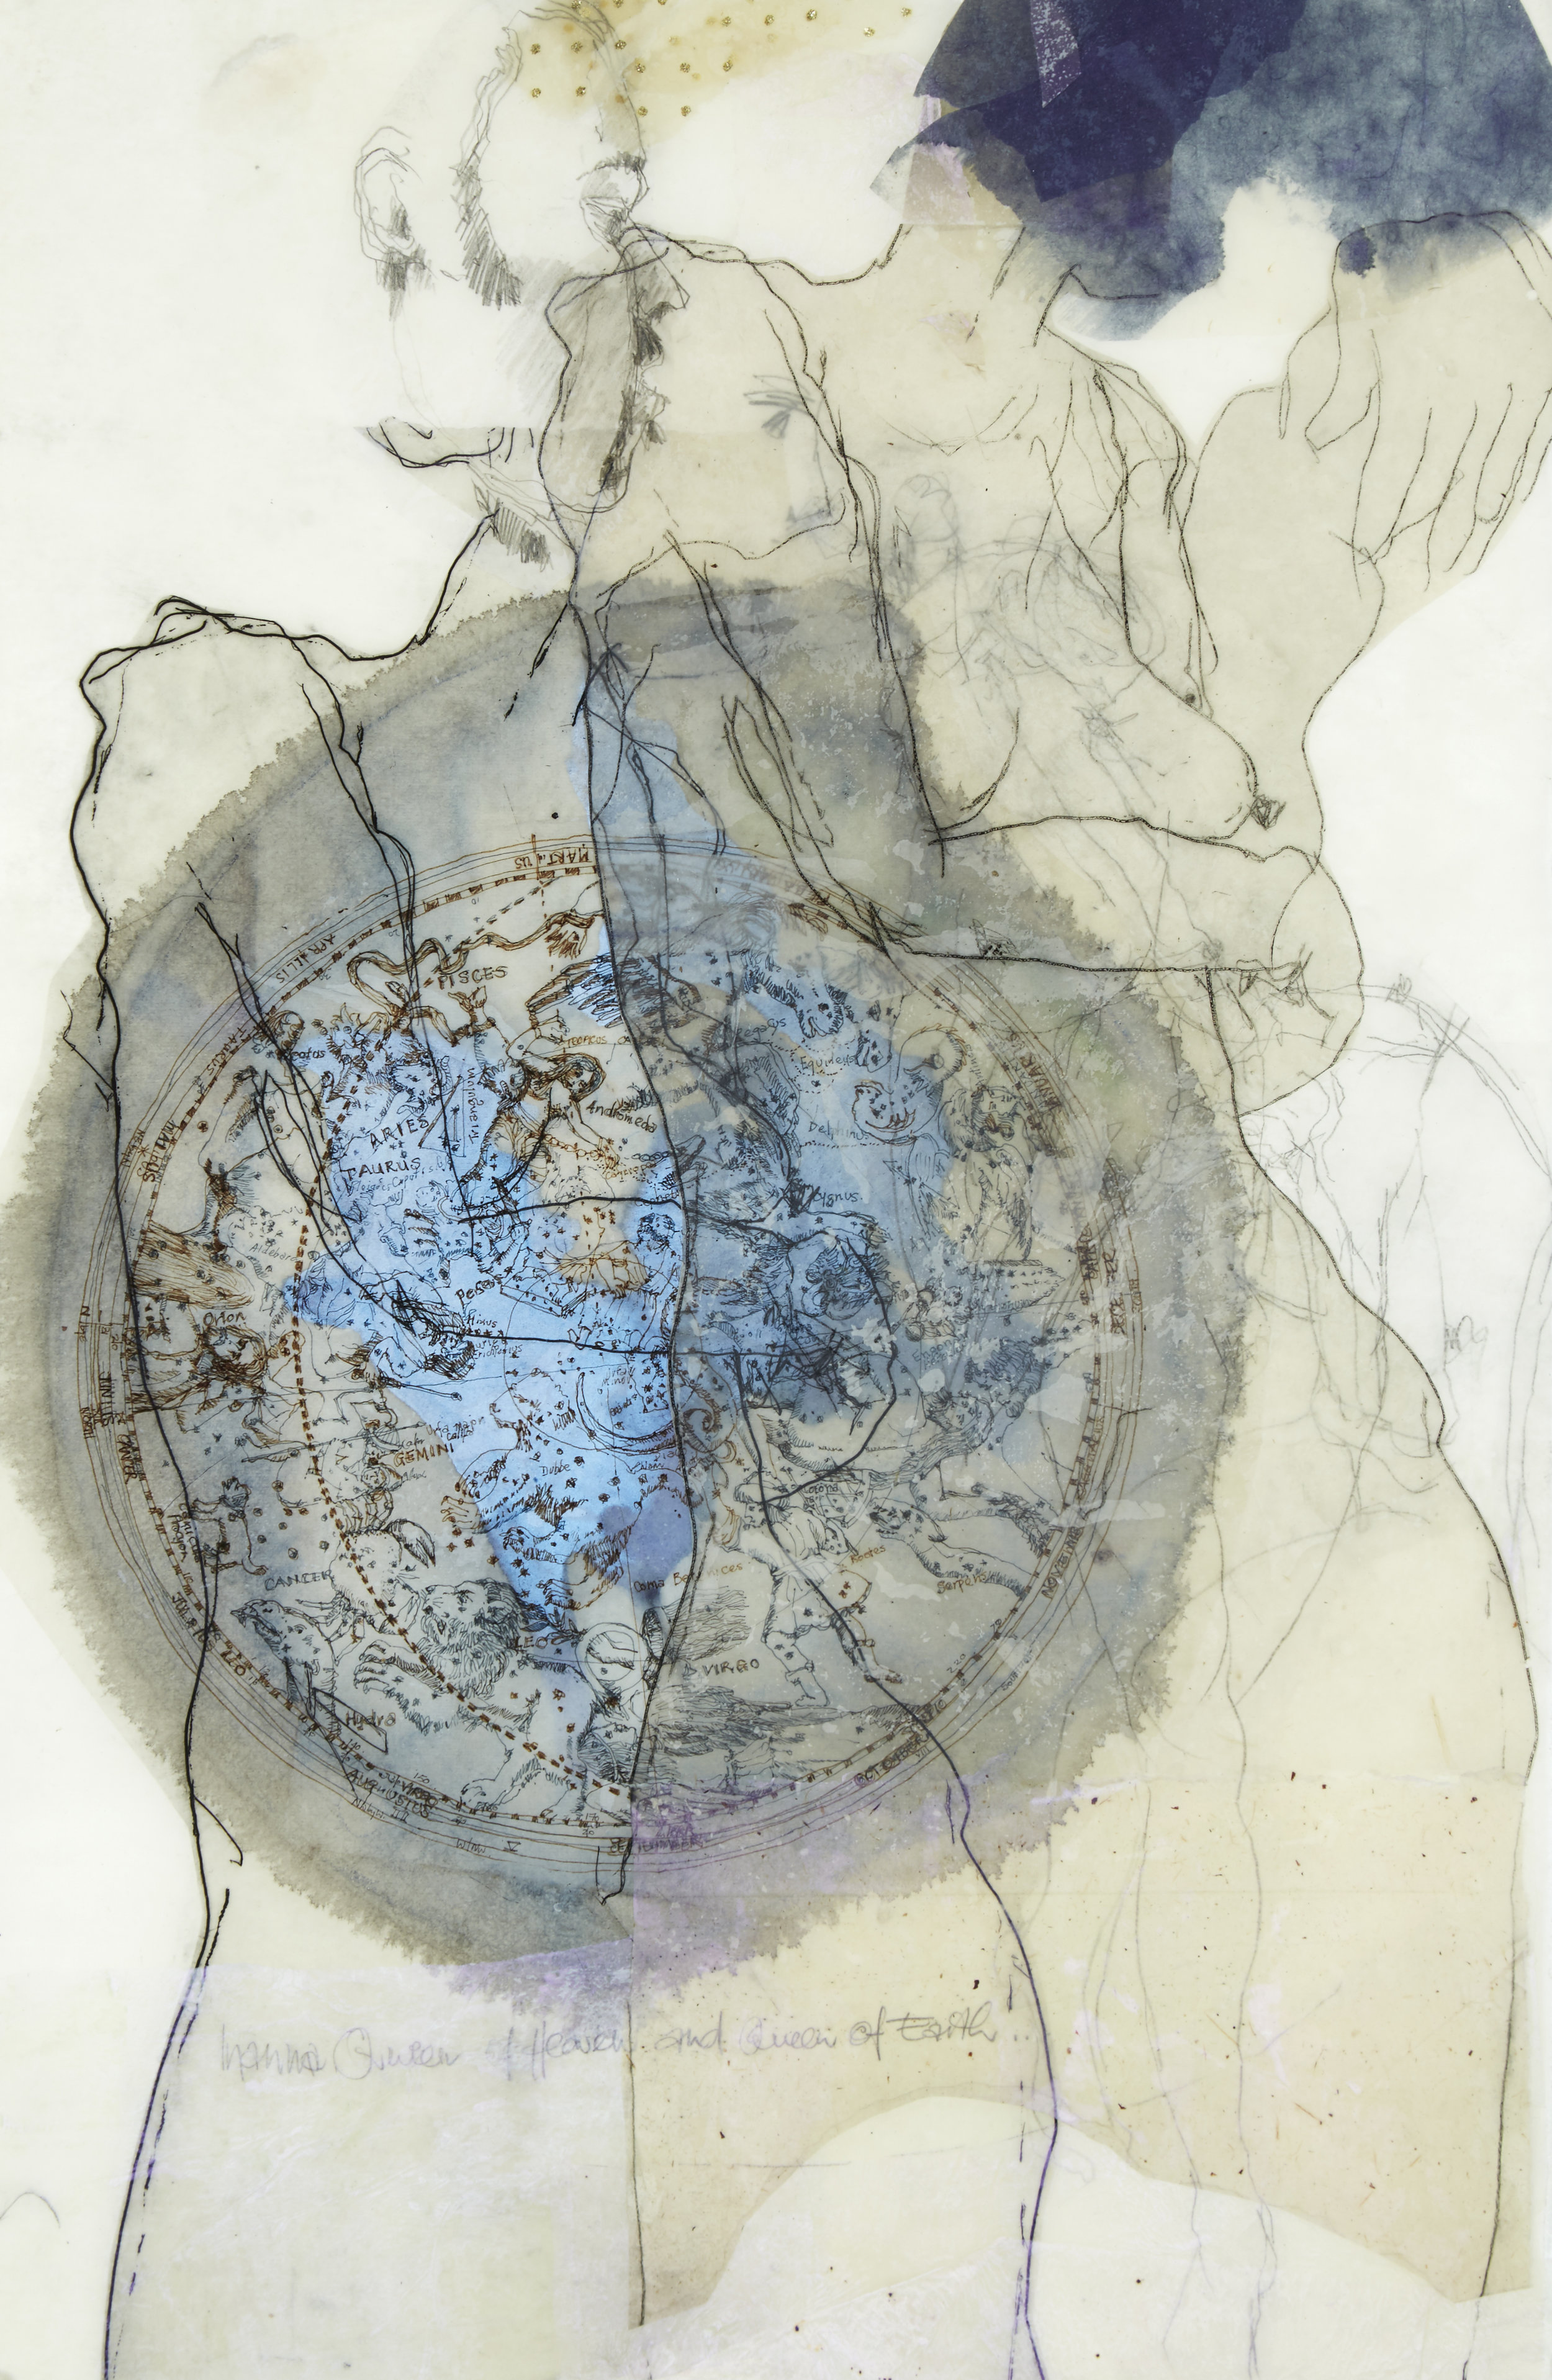 'The World Within' , 2015, encaustic, drawing, etching, collage acrylic on Kozo paper. Framed size: 63.5x91.5cm.